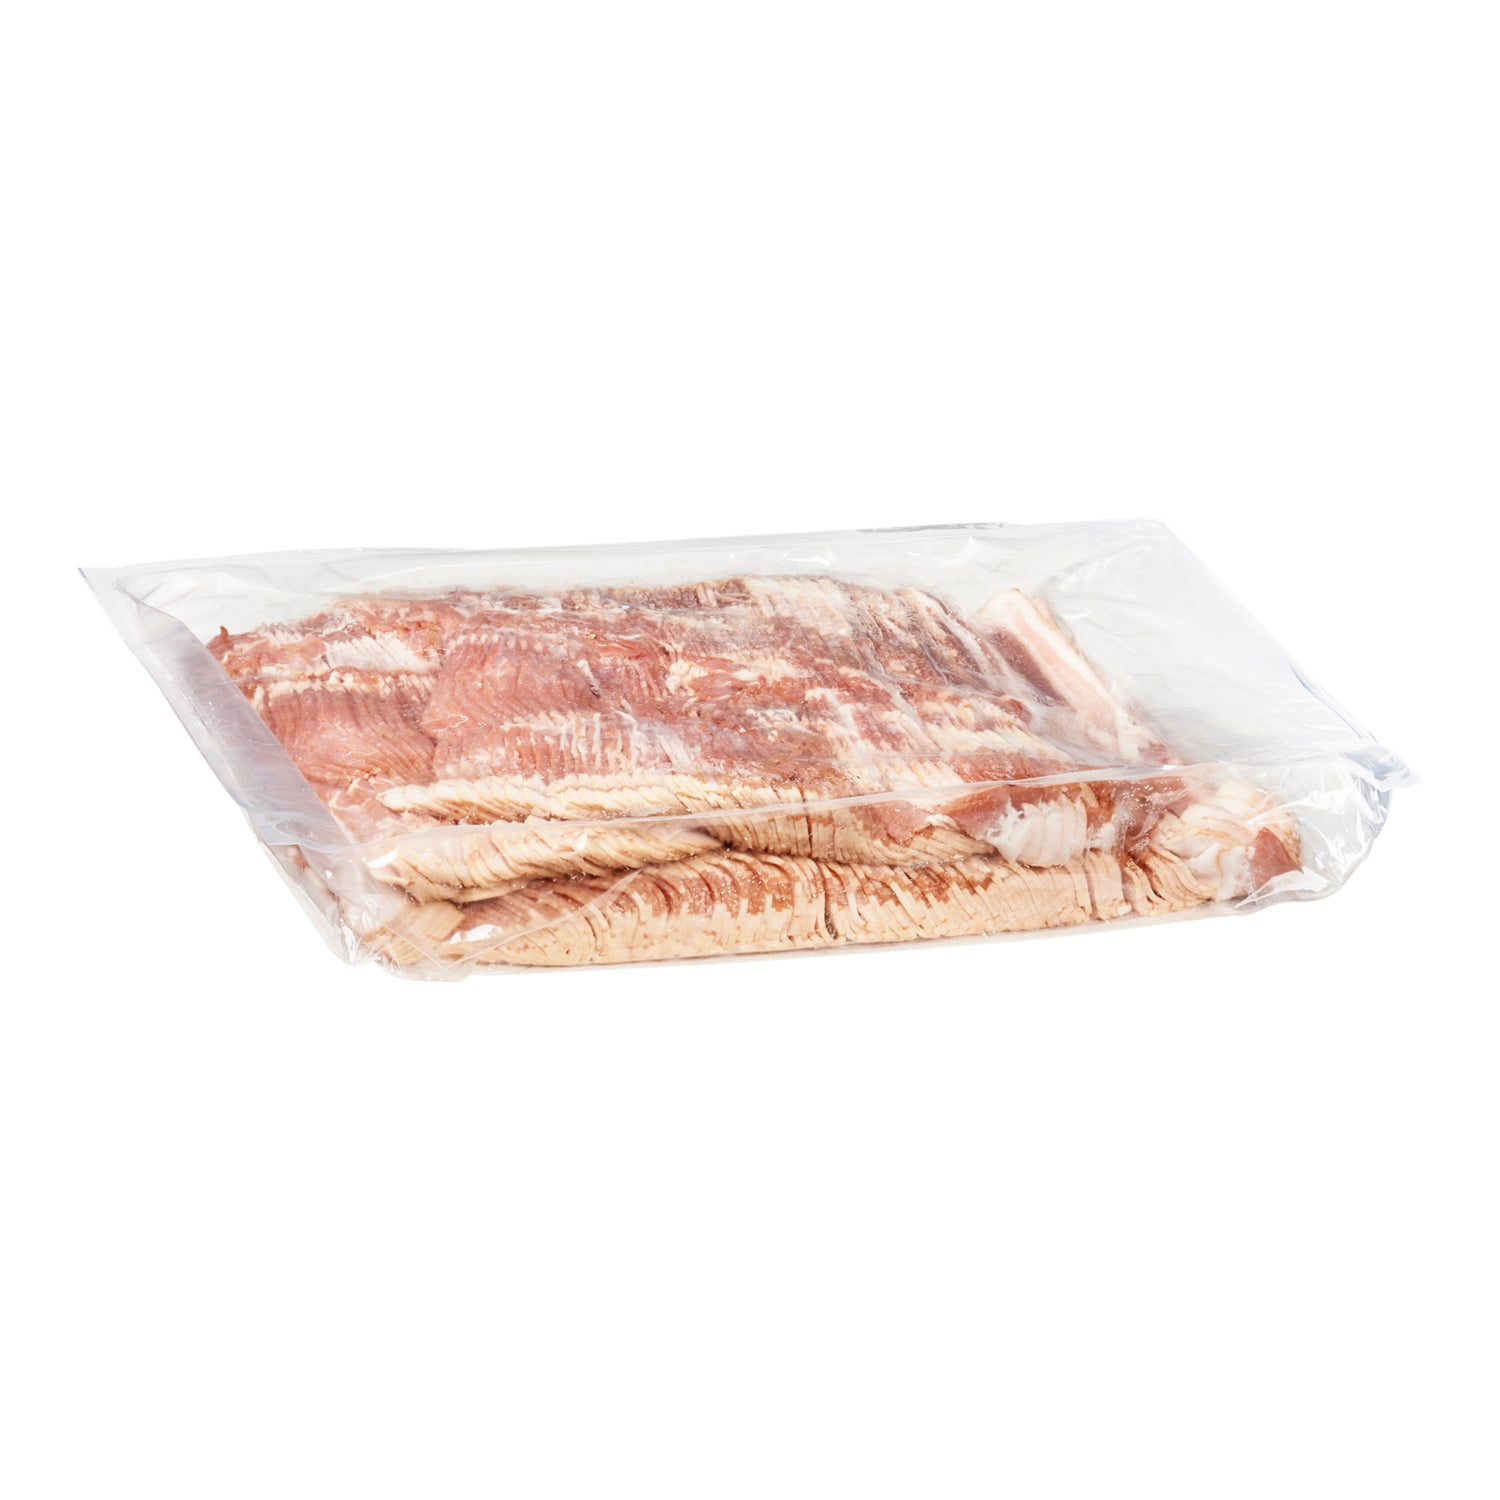 Sysco Classic Fresh Thin Sliced Center Cut Bacon 5 kg Gluten Free - 1 Pack [$13.80/kg]